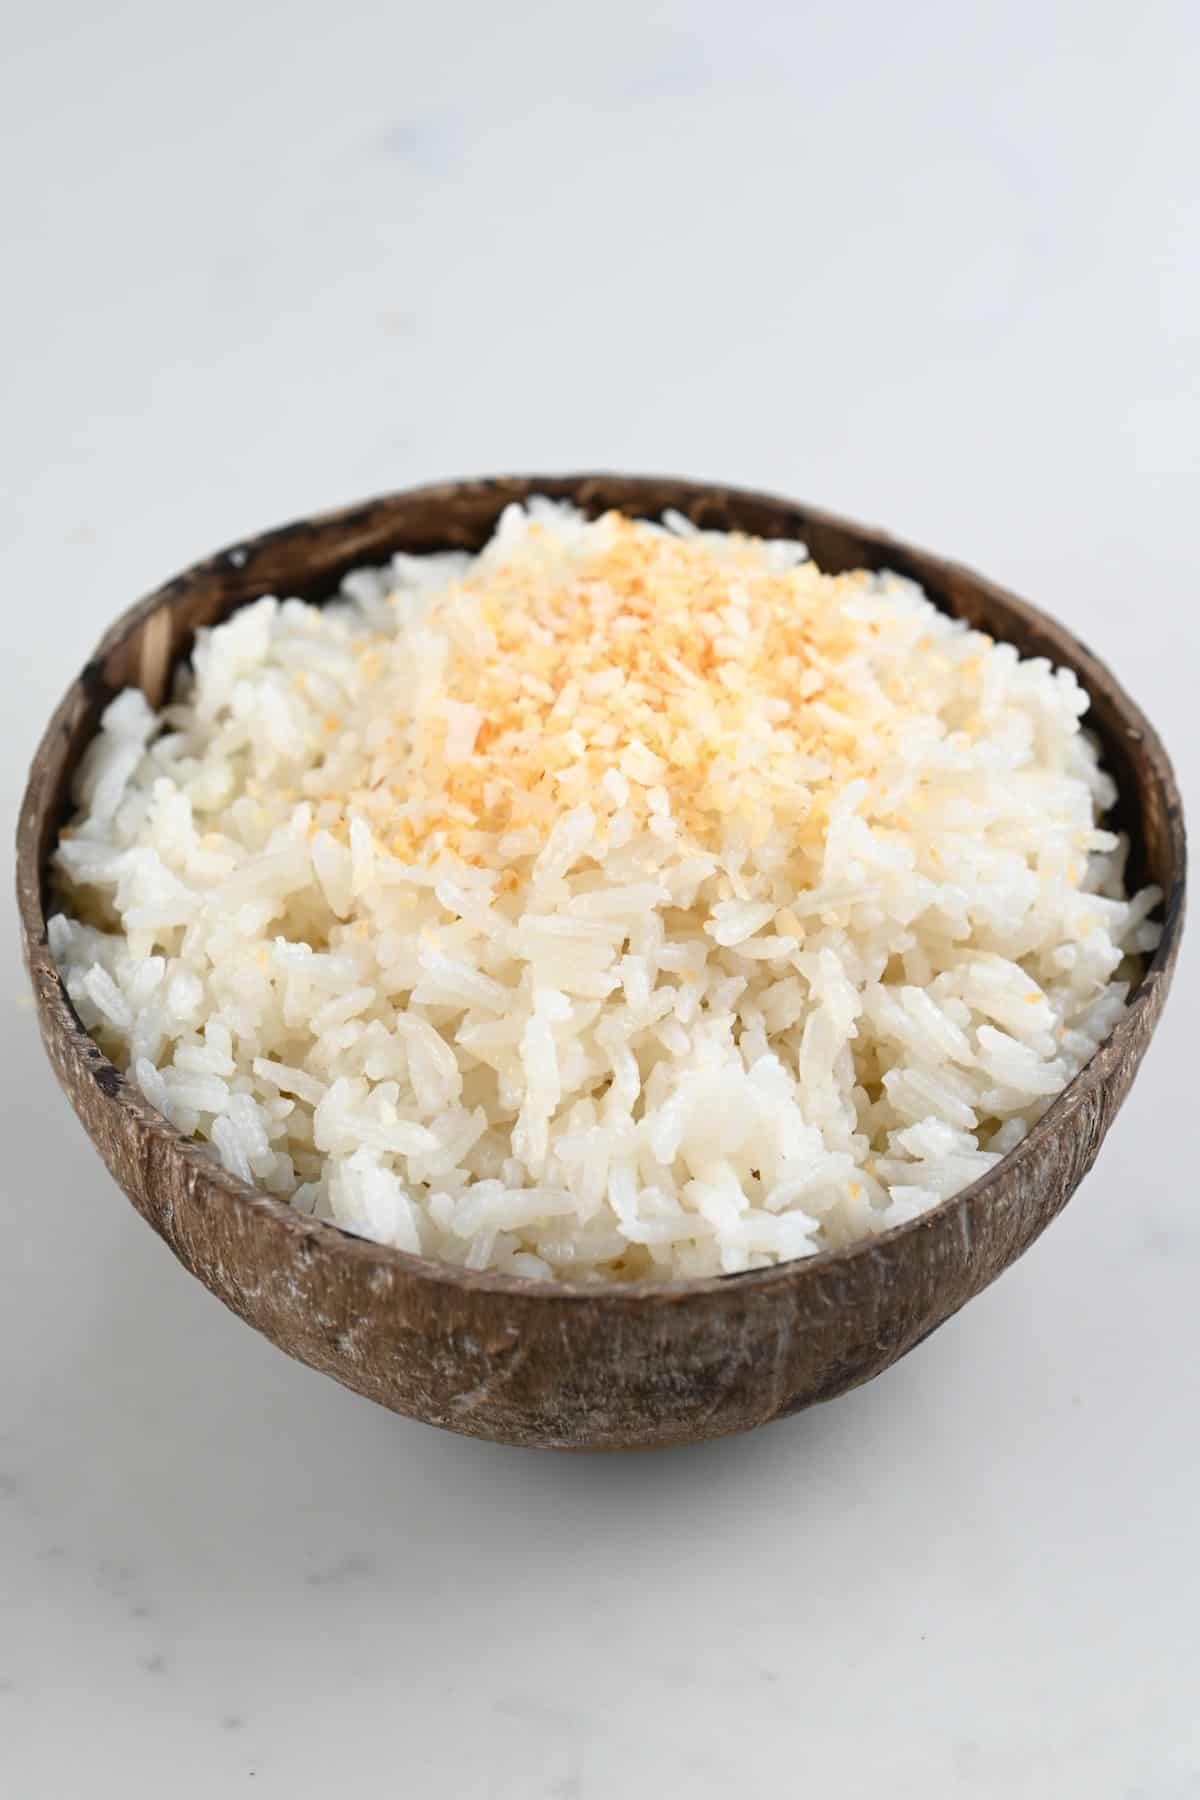 Coconut rice served in a coconut bowl